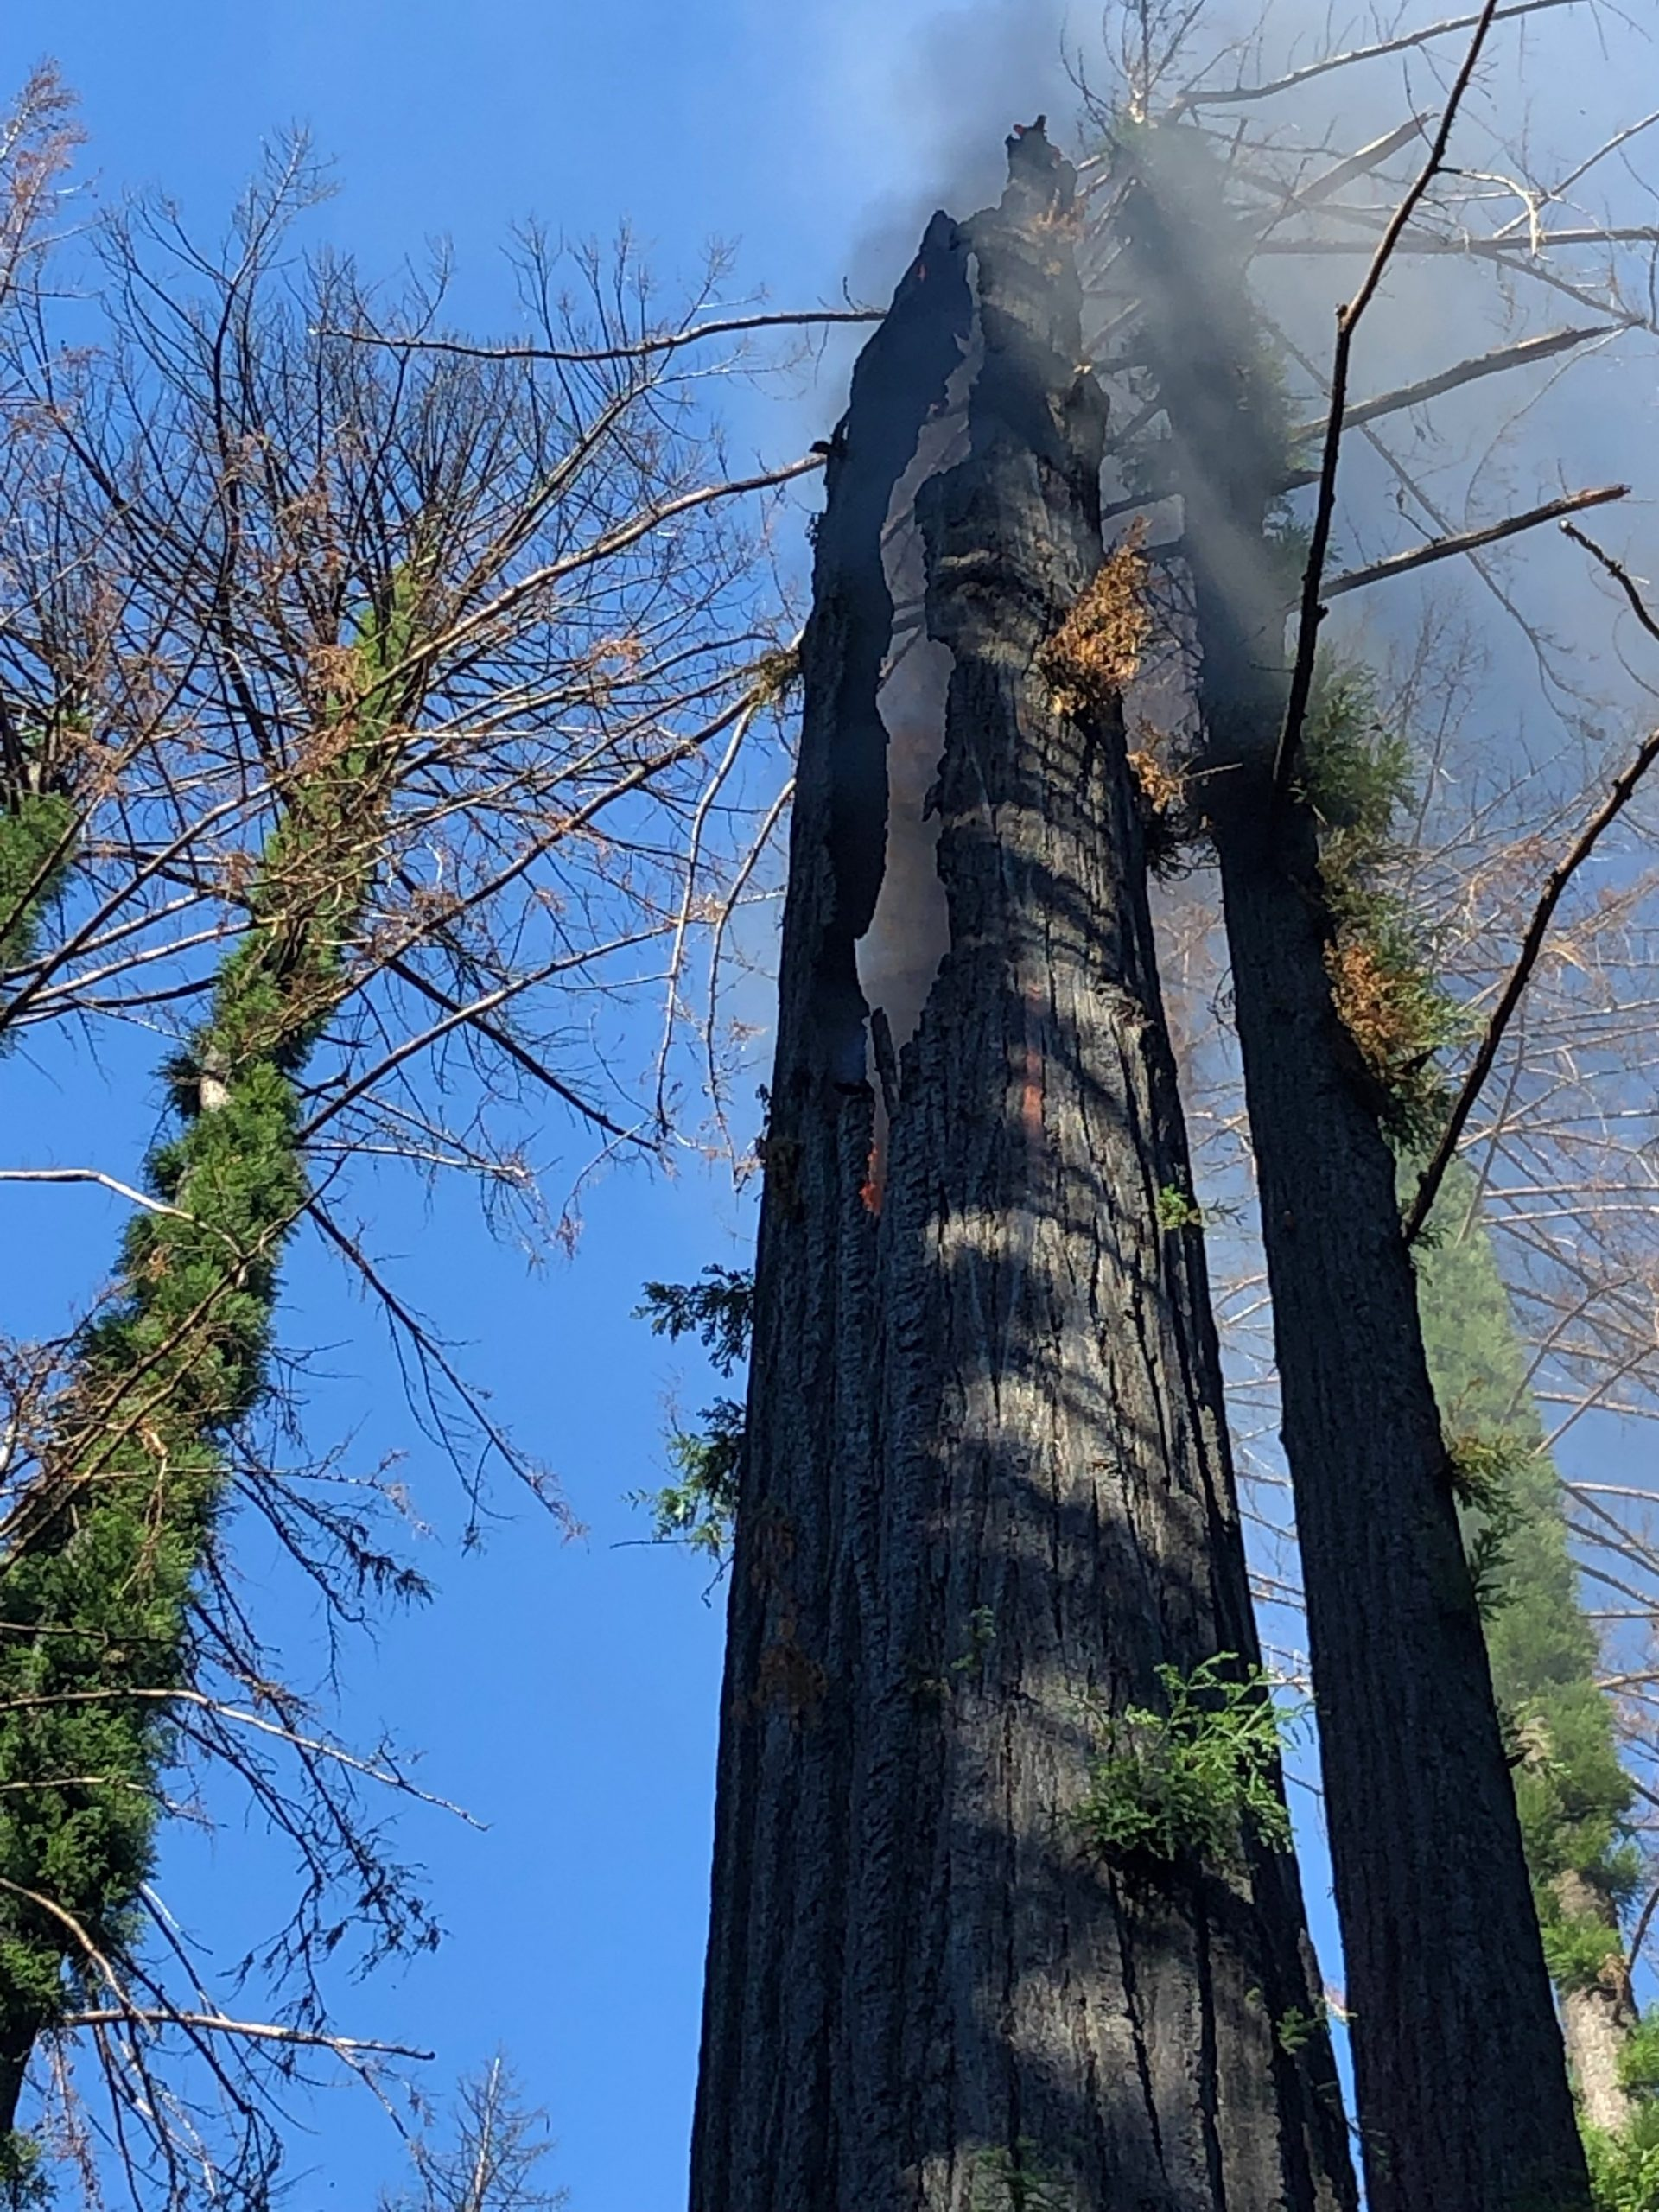 This tree in Big Basin Redwoods State Park was still smoldering from the #CZULightningComplex (10 months ago), but has been extinguished.